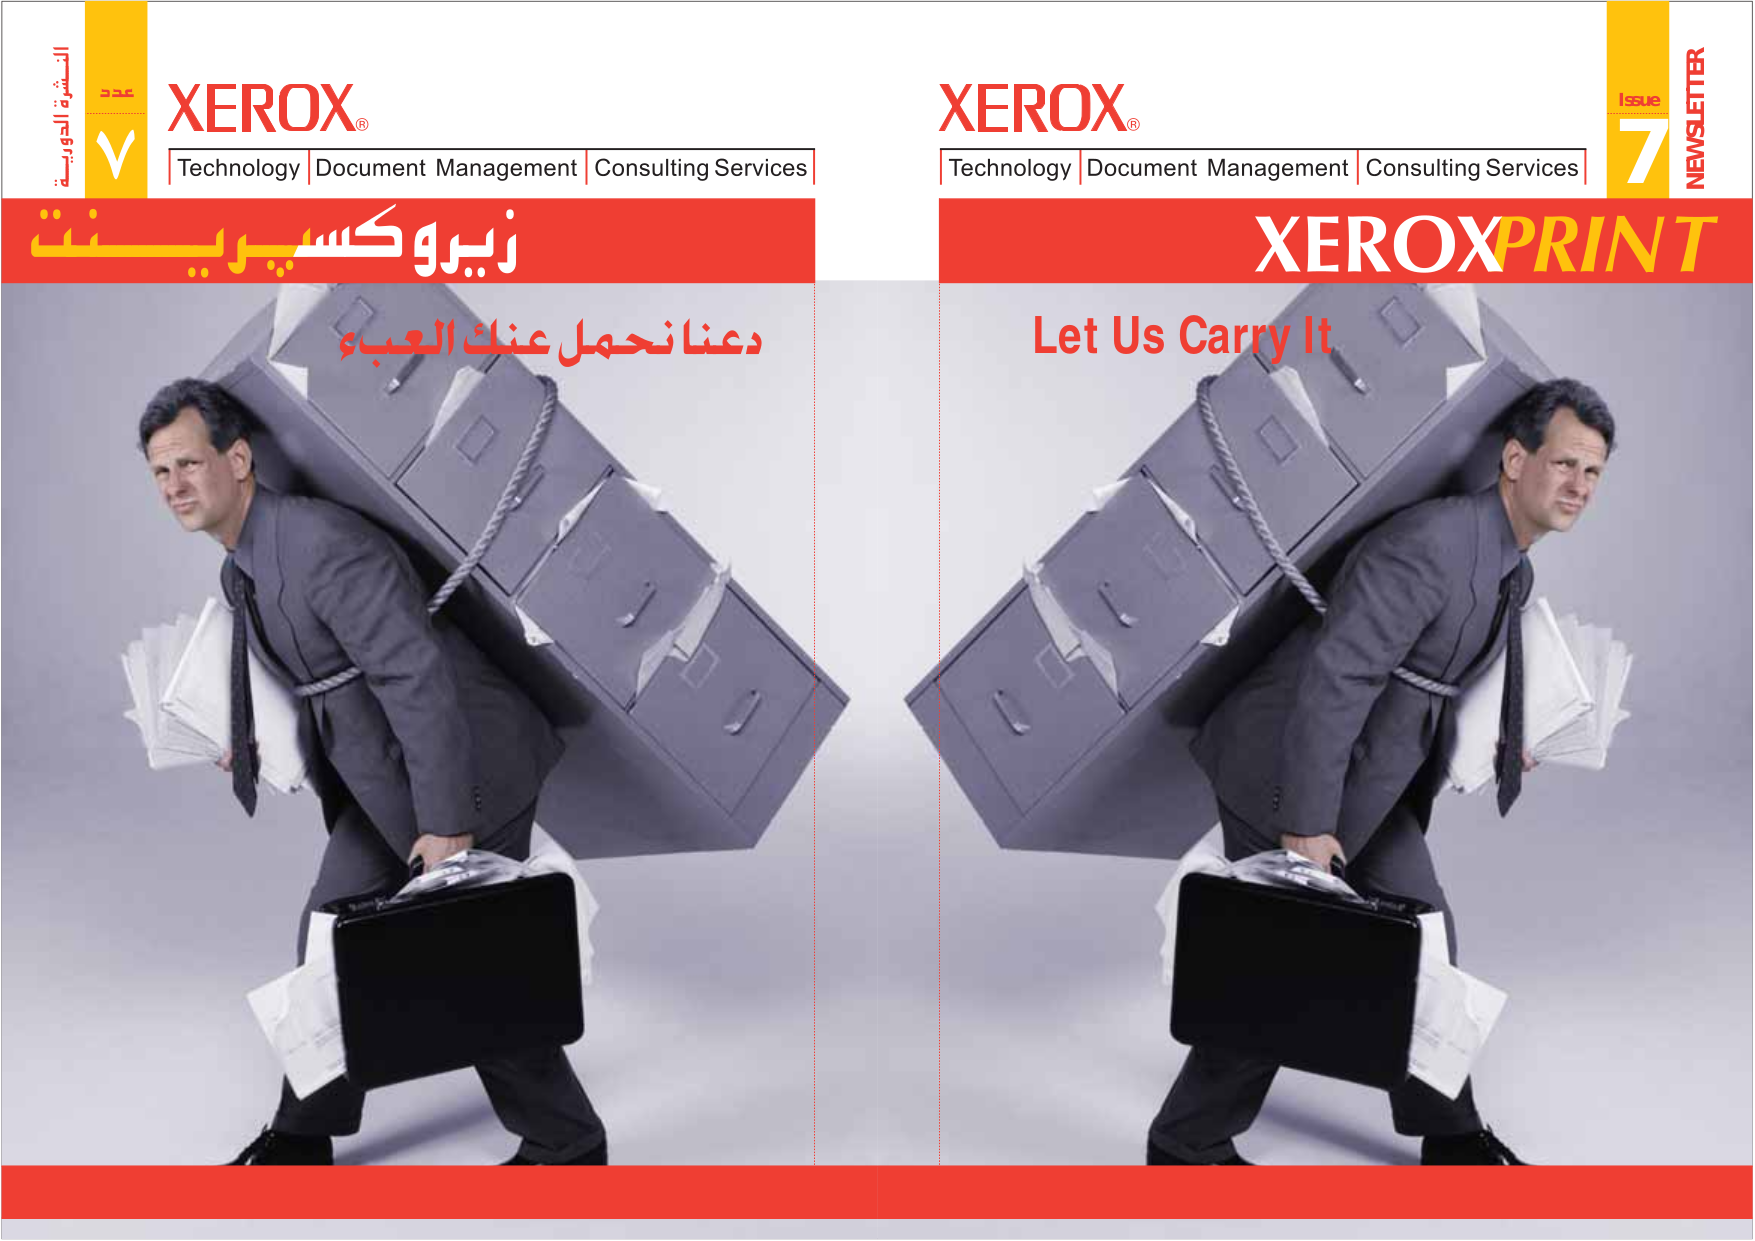 xerox workcentre 7120 service manual pdf